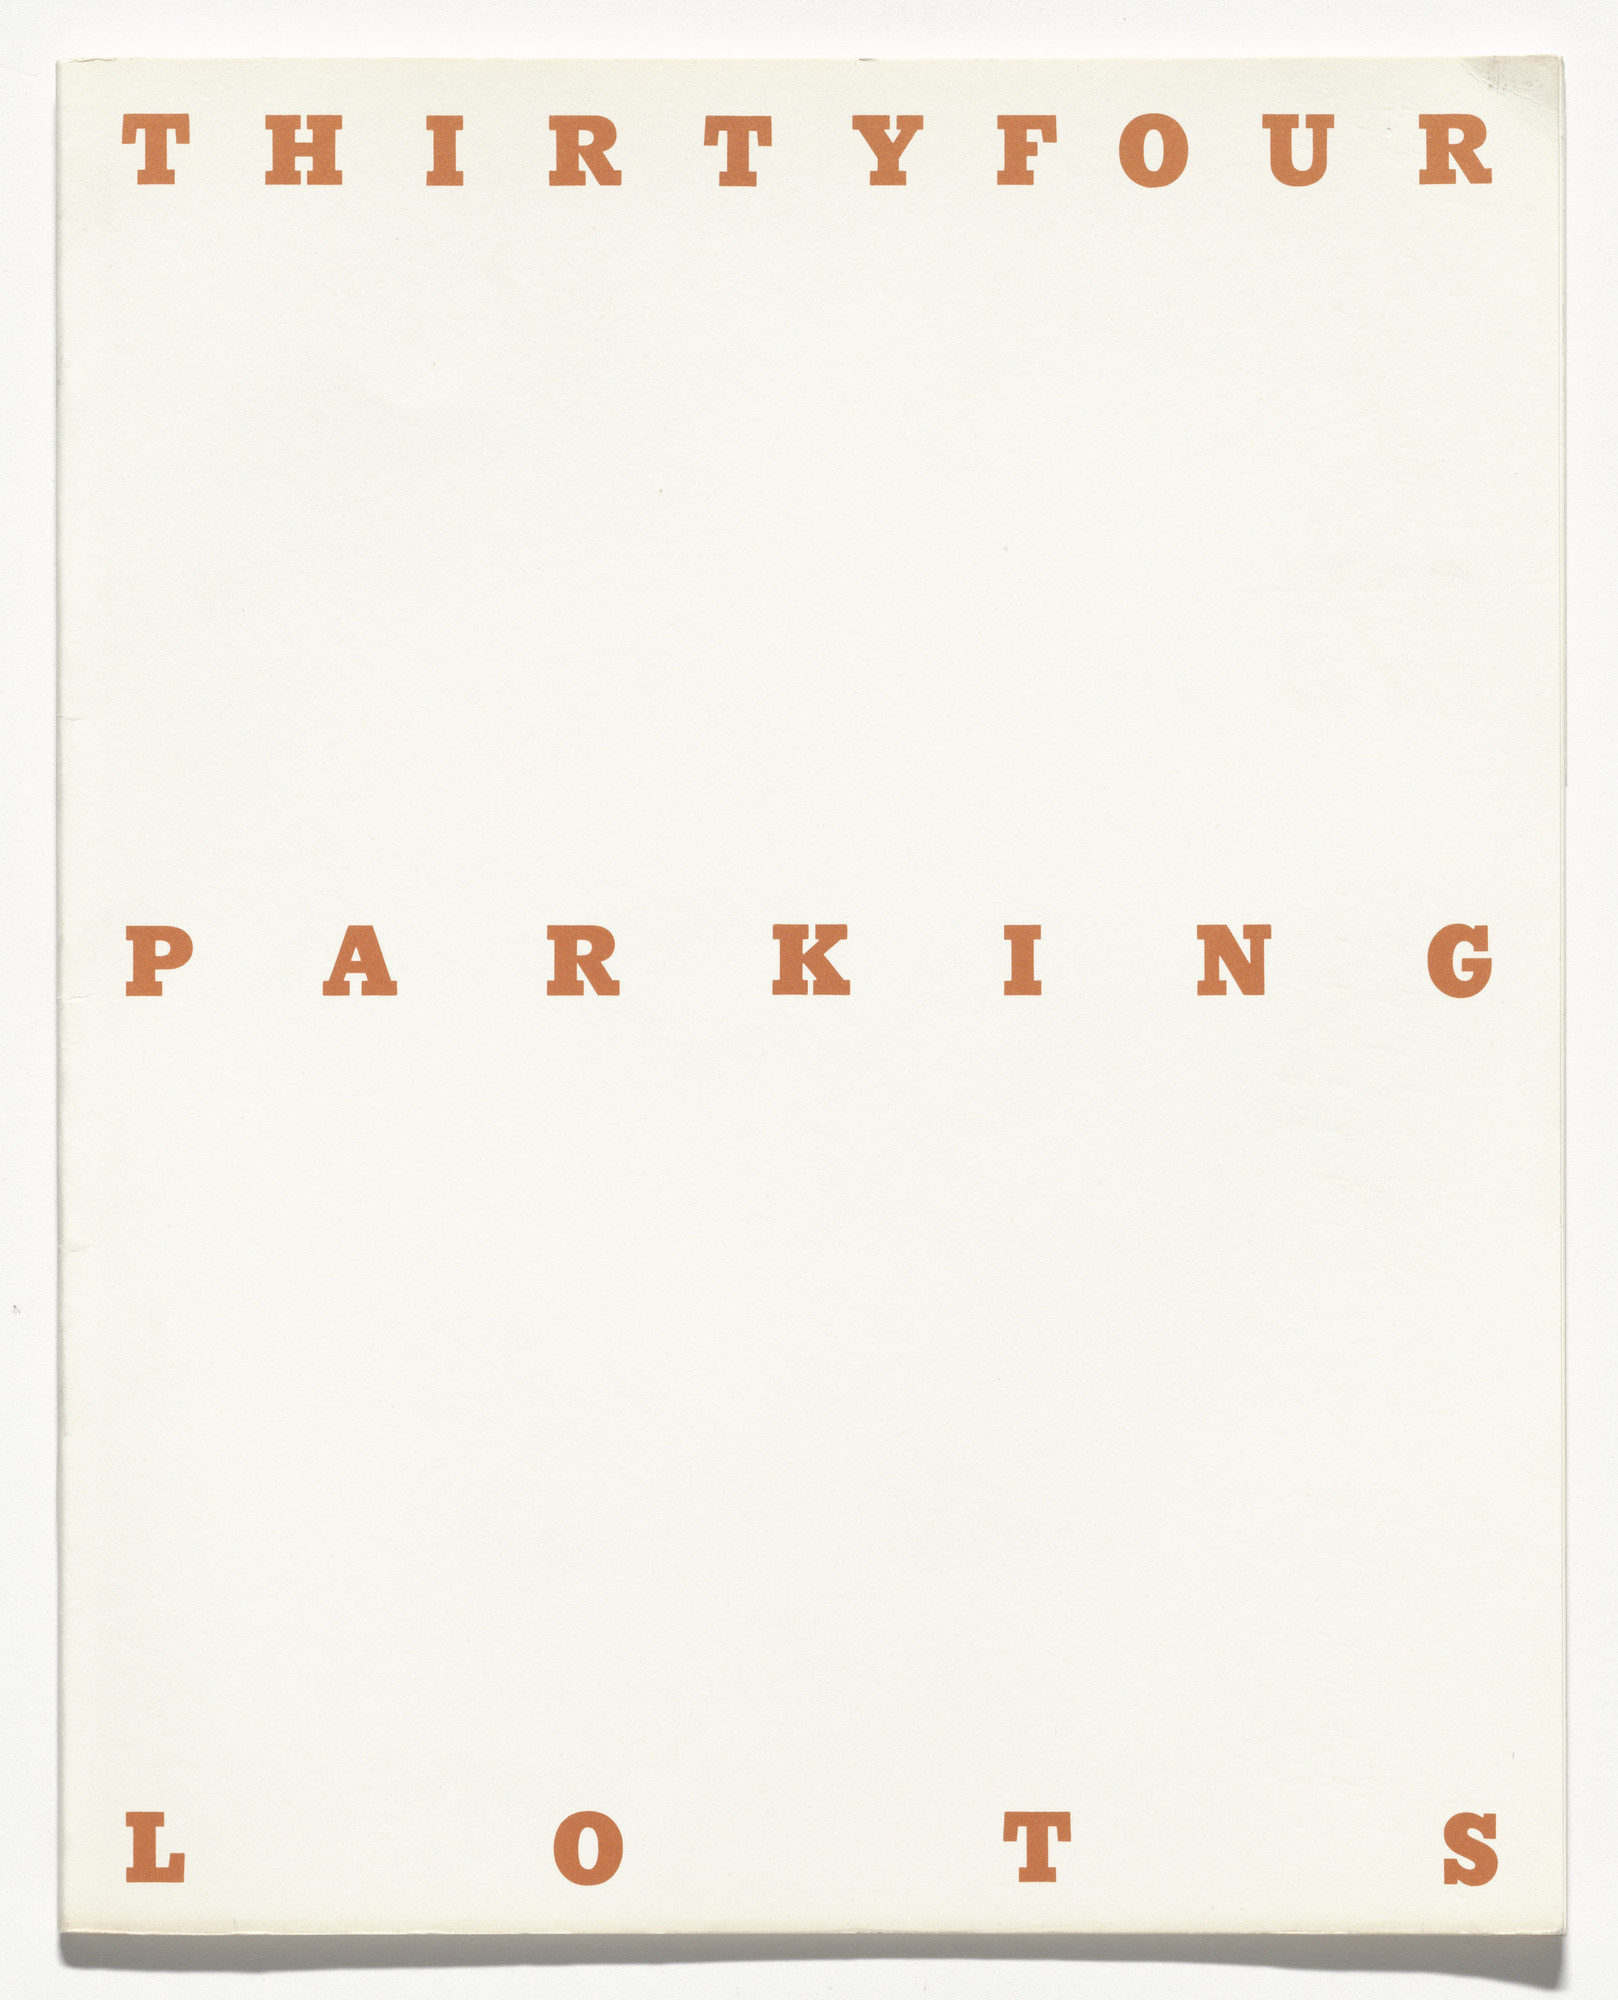 Edward Ruscha. Thirtyfour Parking Lots in Los Angeles. 1967